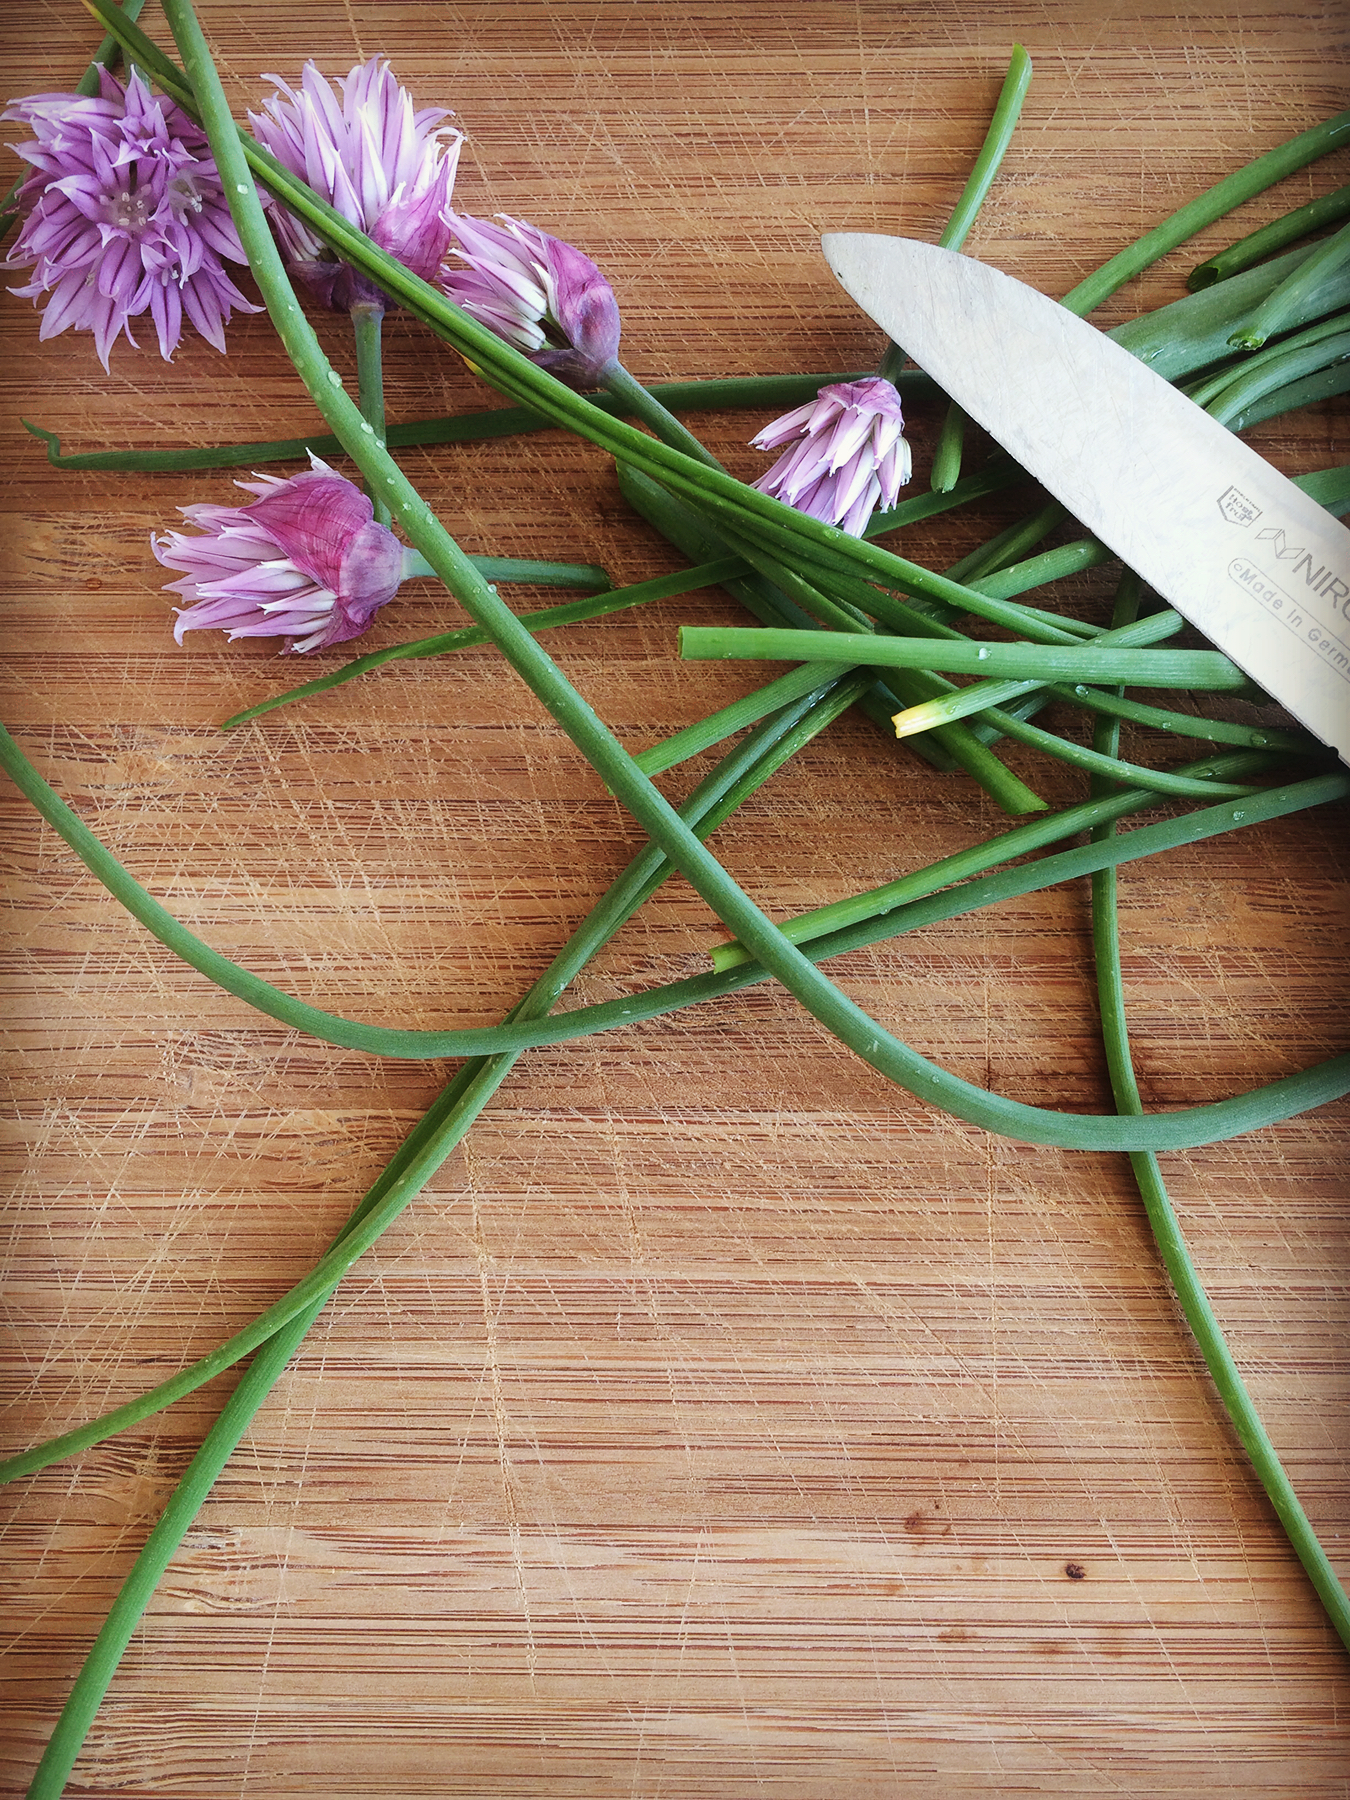 Chives & it's blossoms - mycleanlife